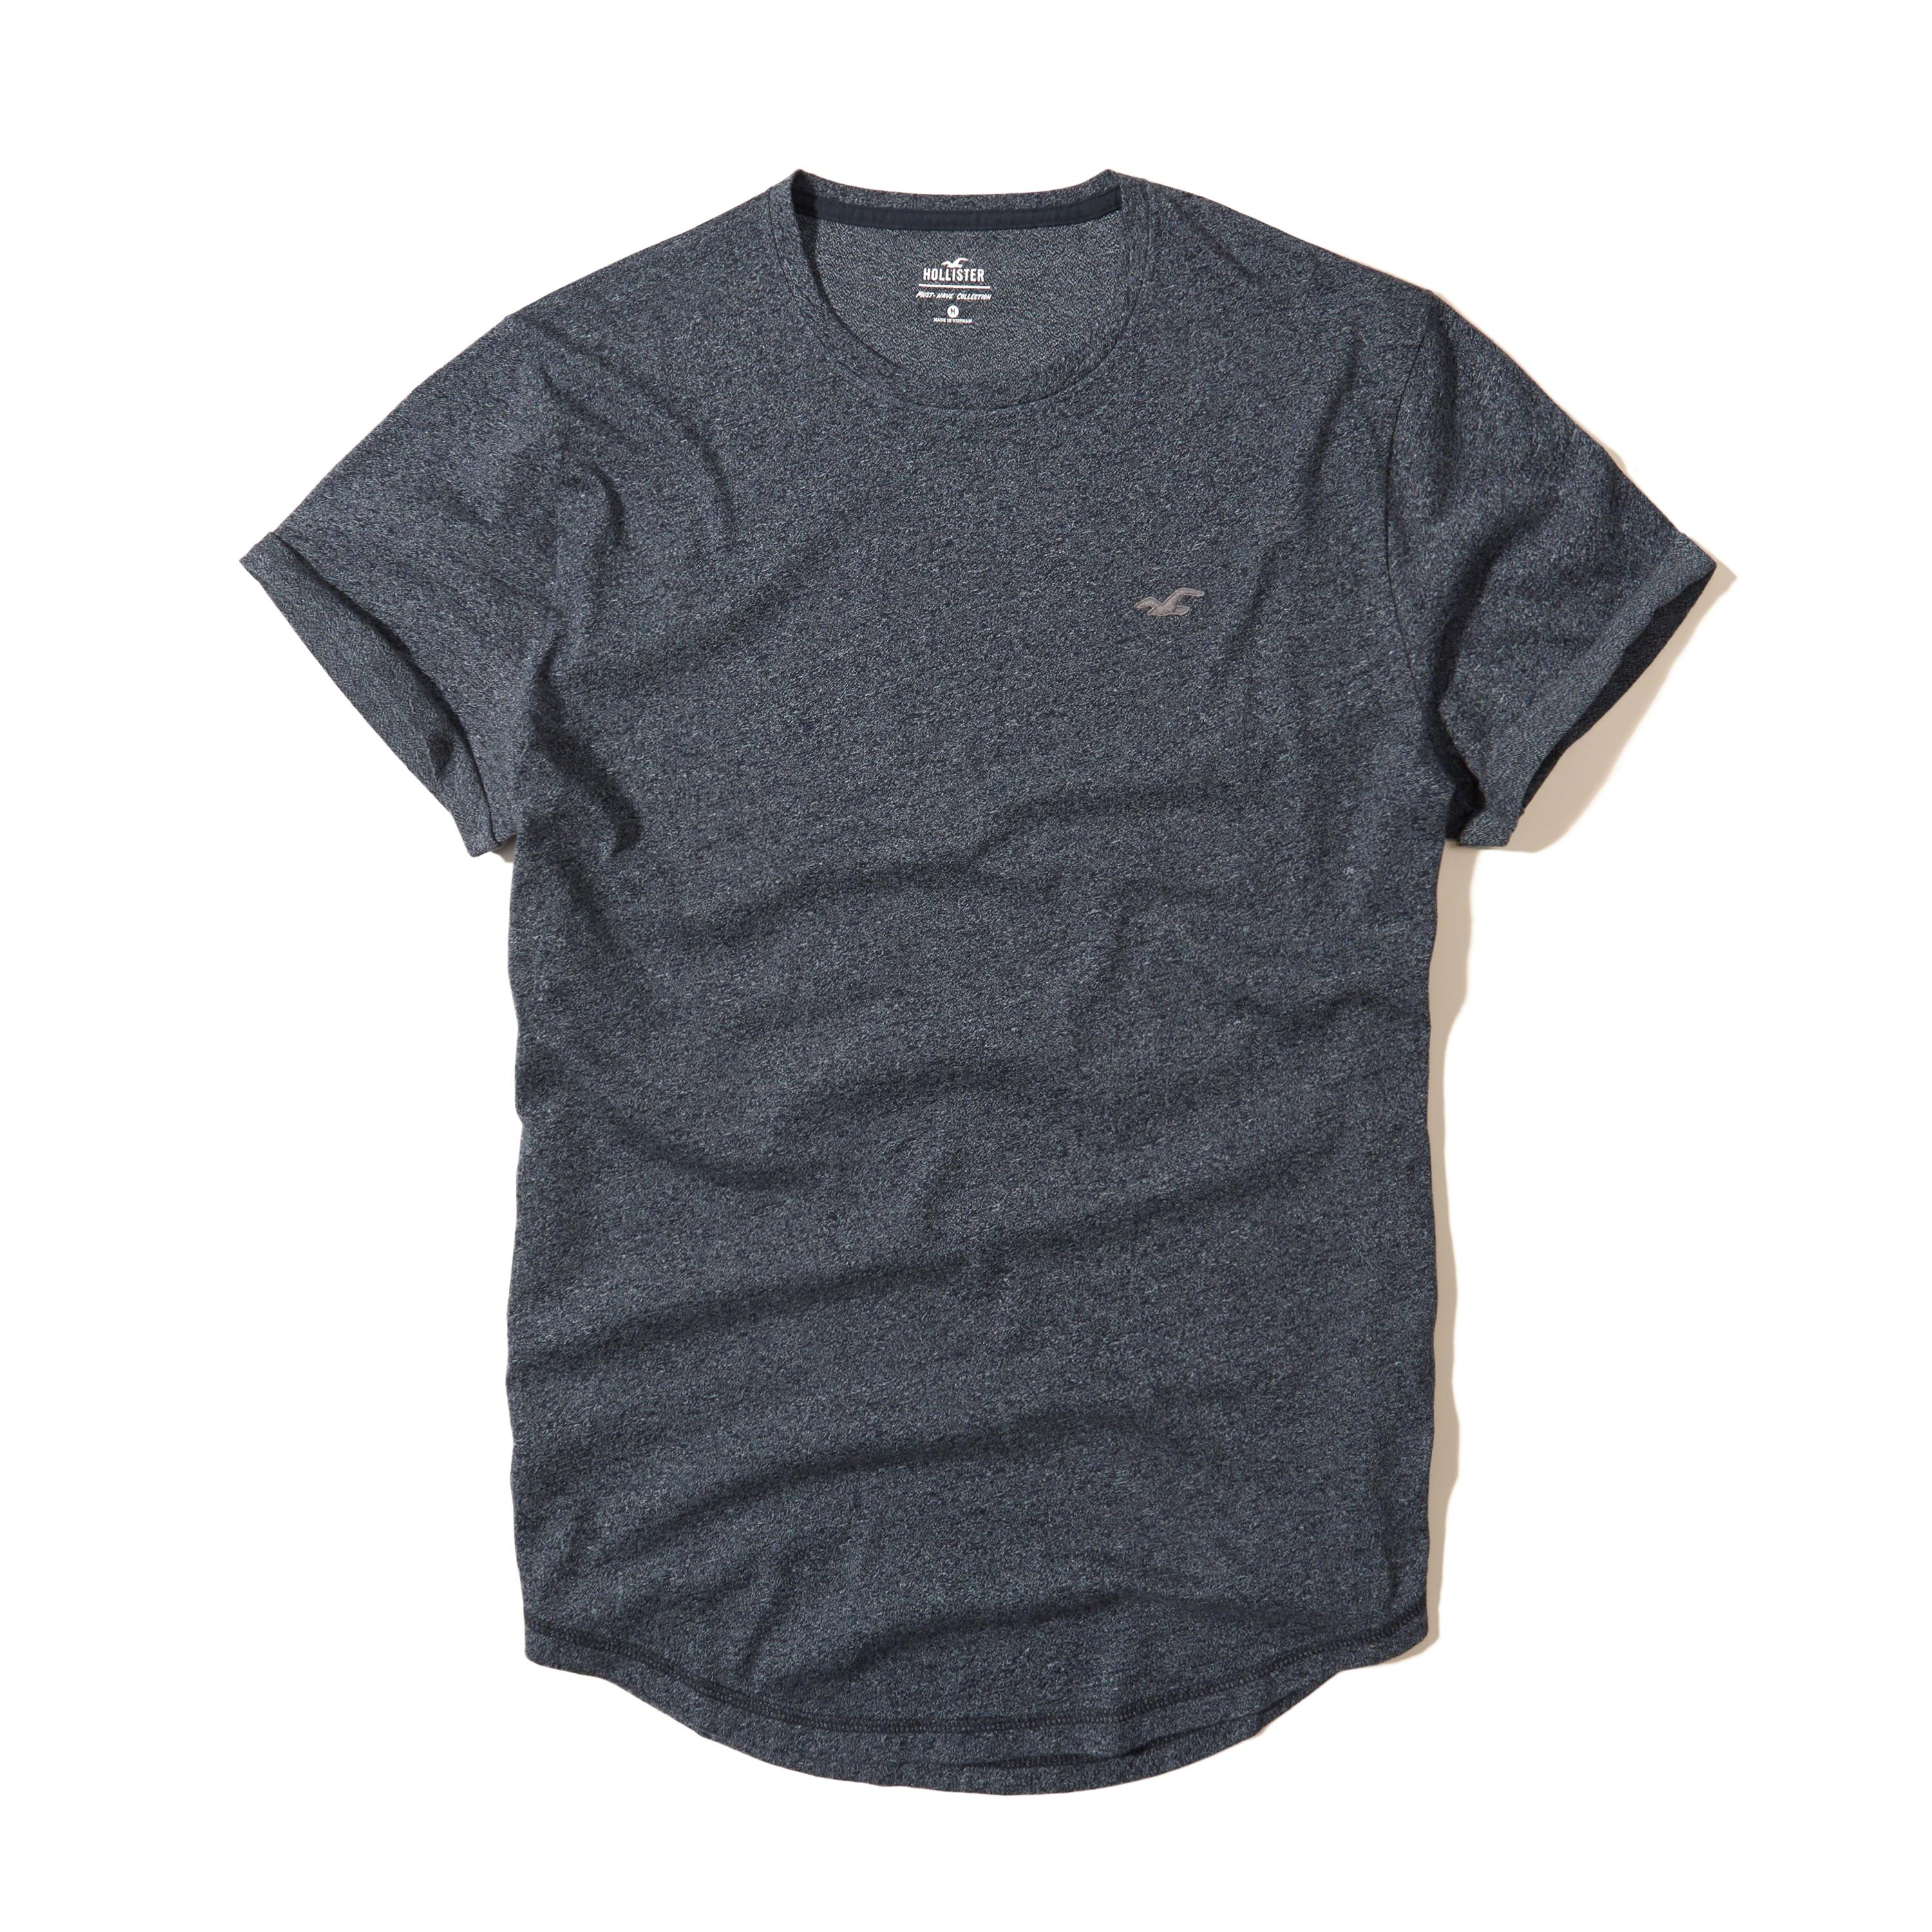 Hollister Must-have Rolled Cuff Crew T-shirt in Blue for ...